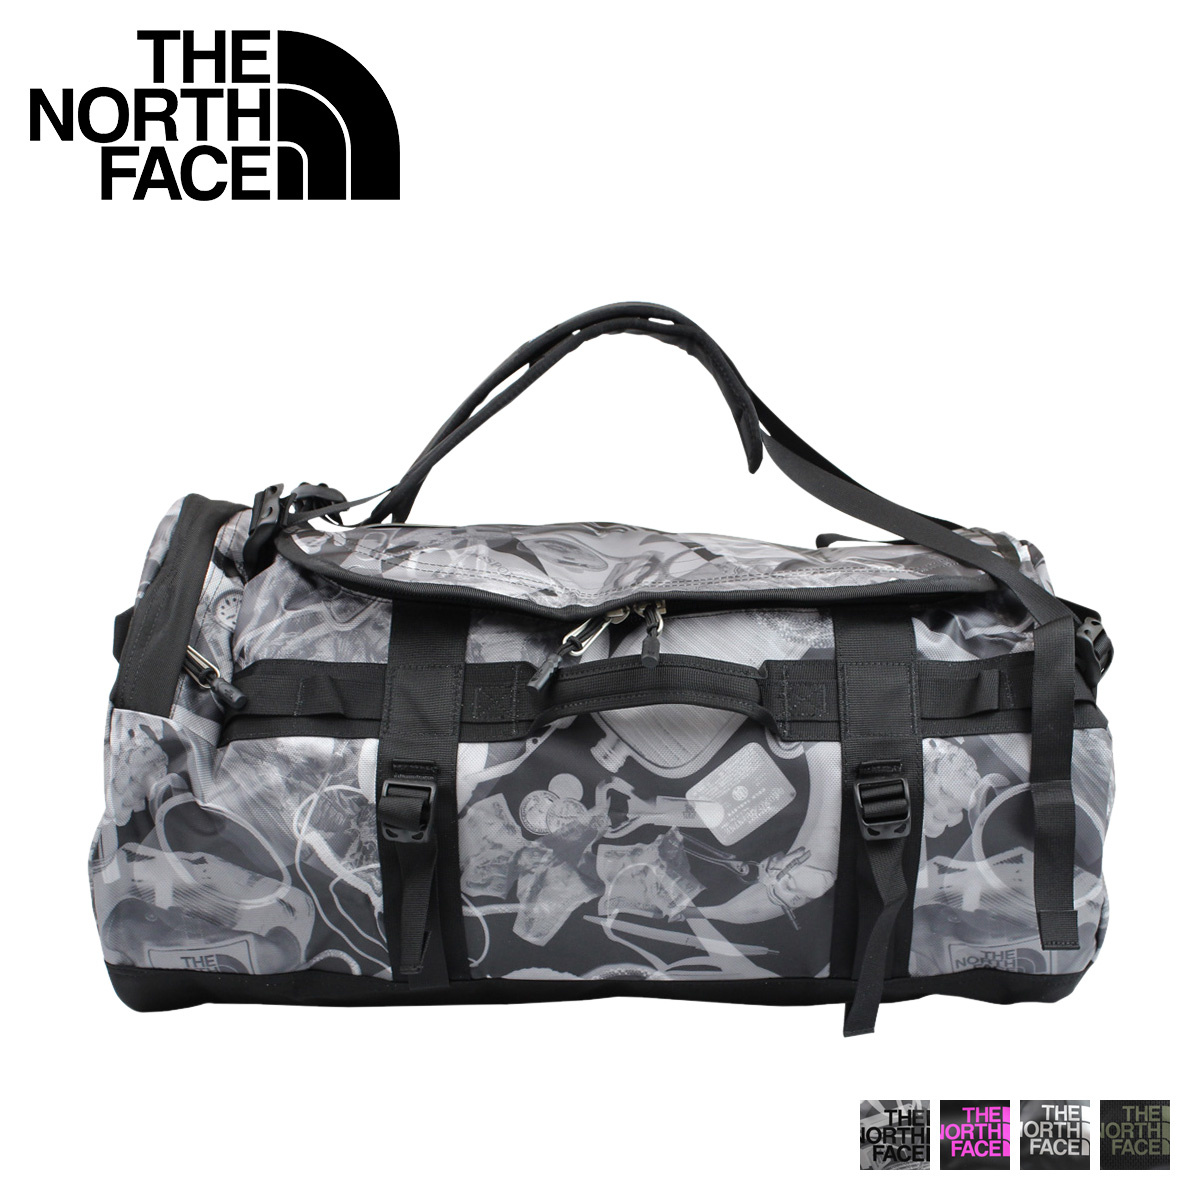 THE NORTH FACE north face bag bag duffel bag BASE CAMP DUFFEL-M 69L men  women b67e0f6ba5